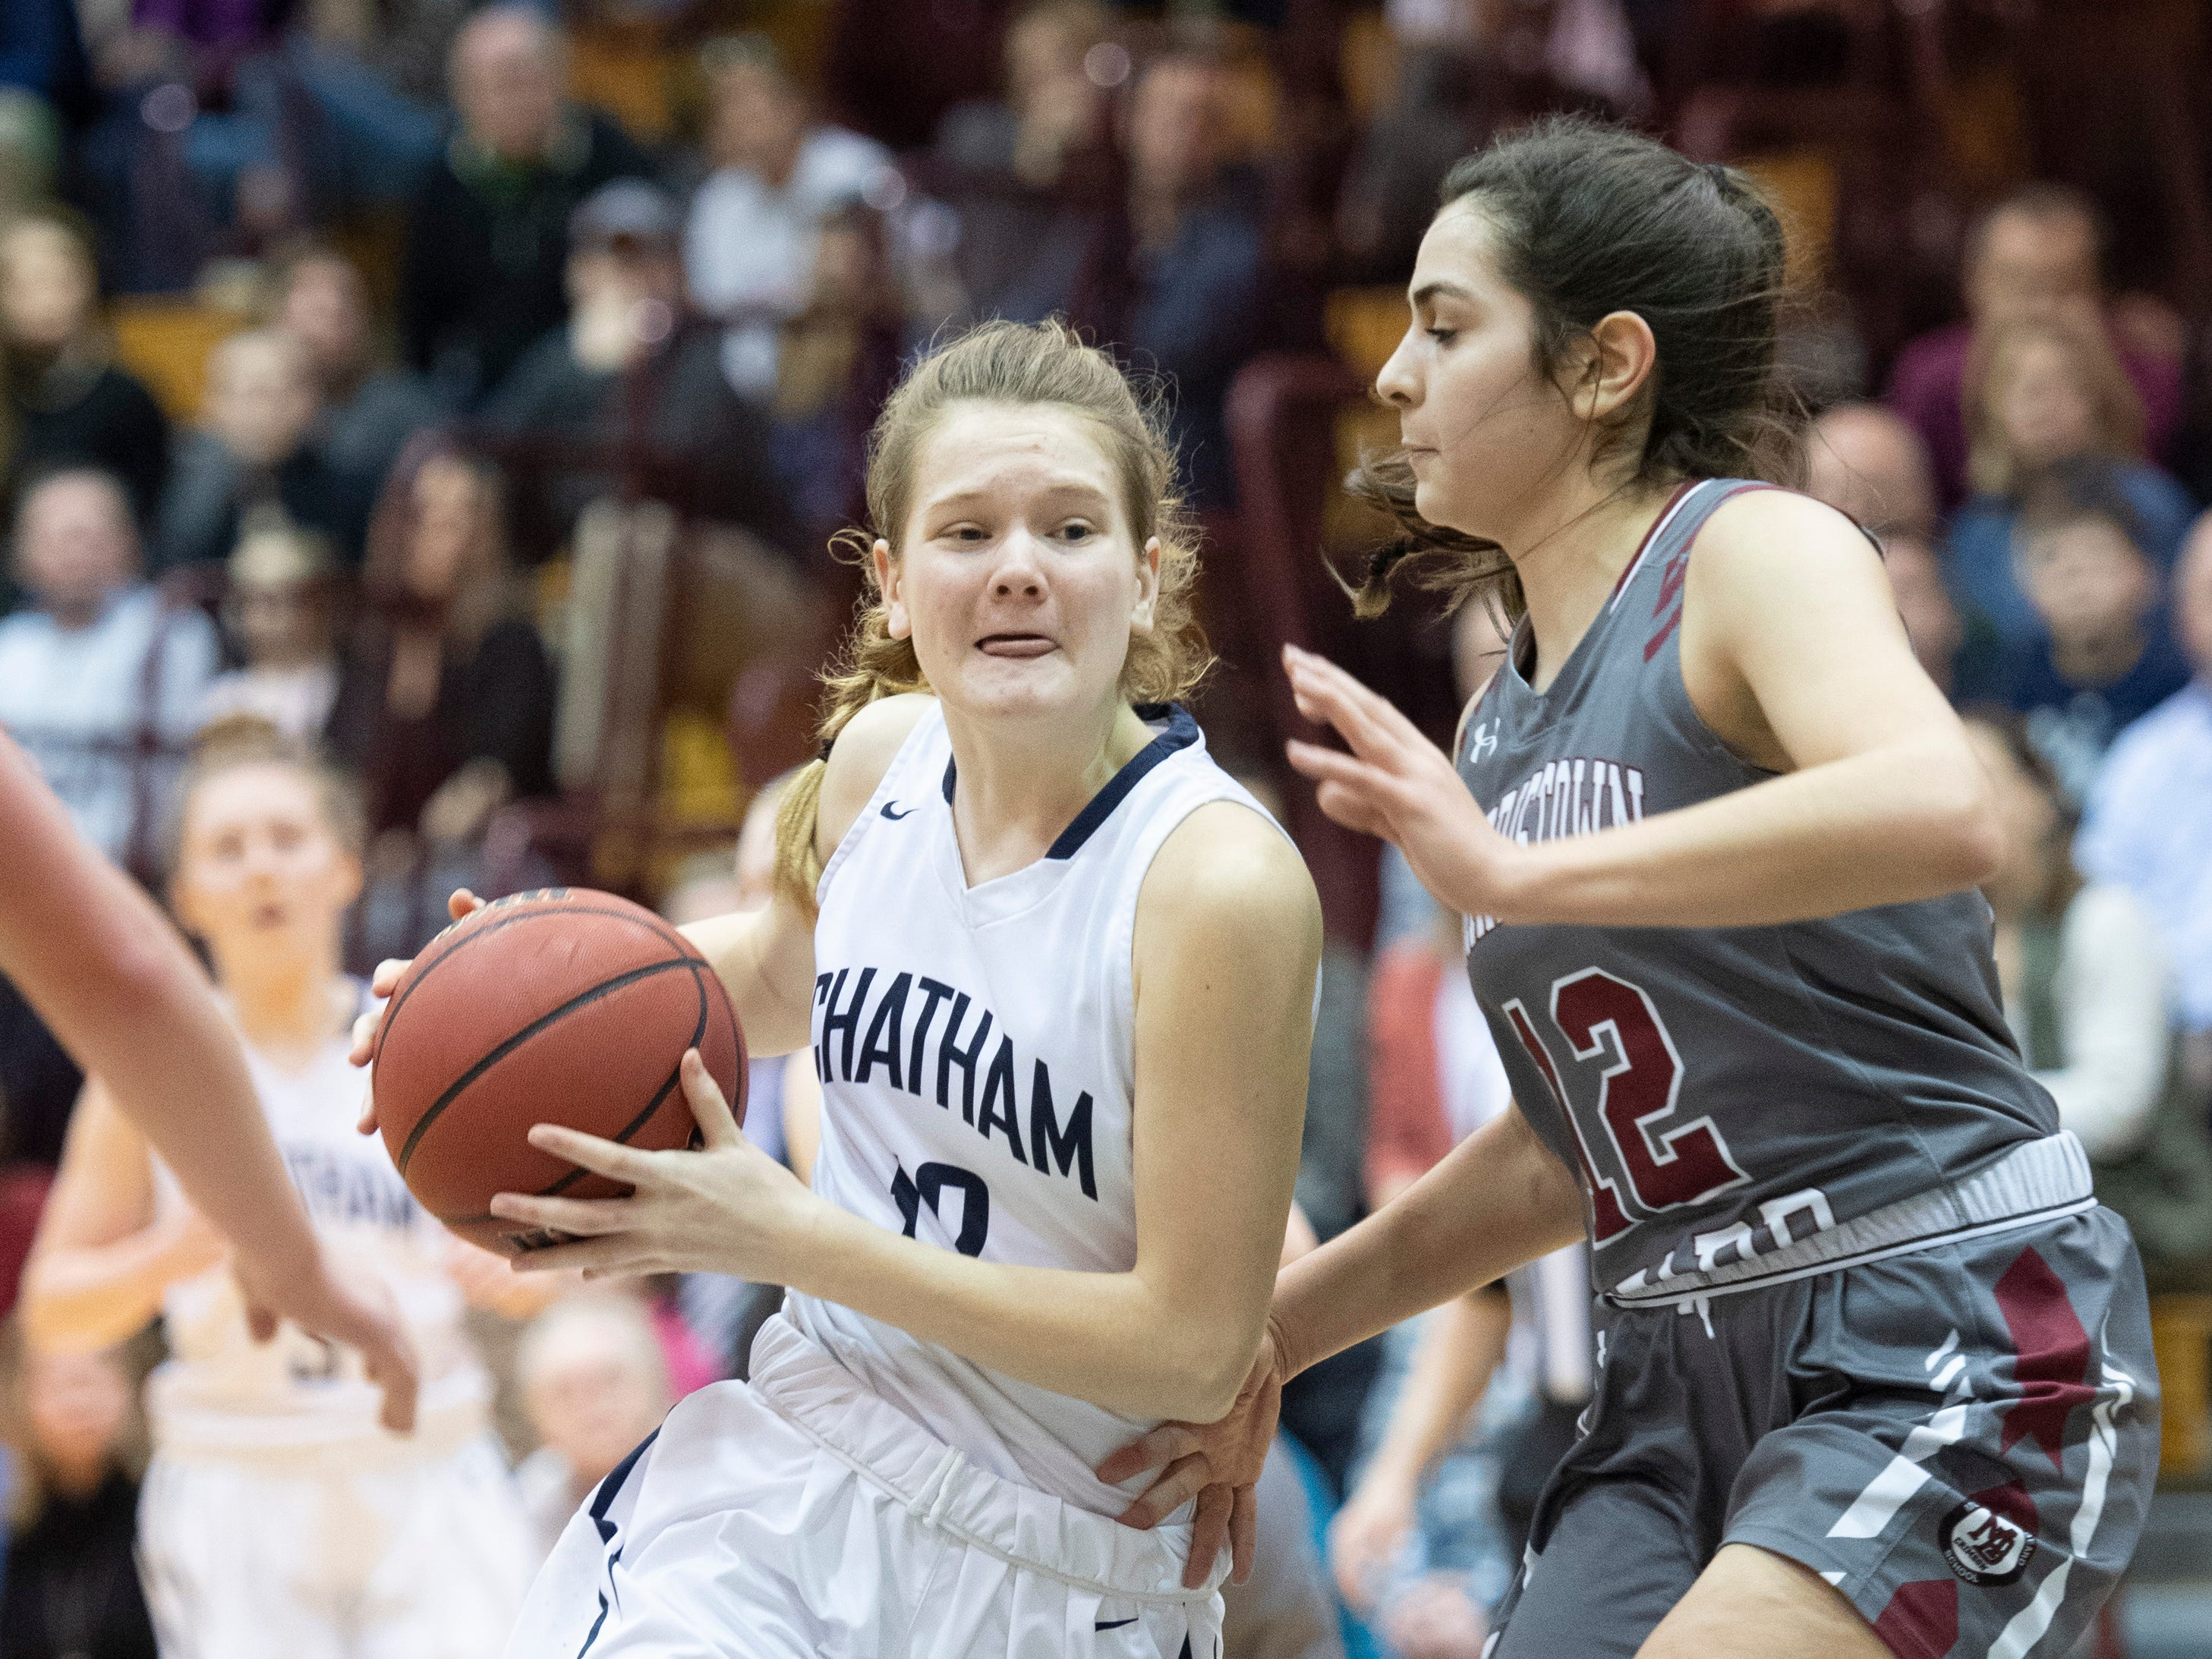 Chatham freshman forward Carly Frohnapfel drives to the basket as Morristown-Beard's Addisyn Ibrahim defends during the Morris County Tournament girls basketball final at County College of Morris in Randolph on Friday, February 22, 2019.